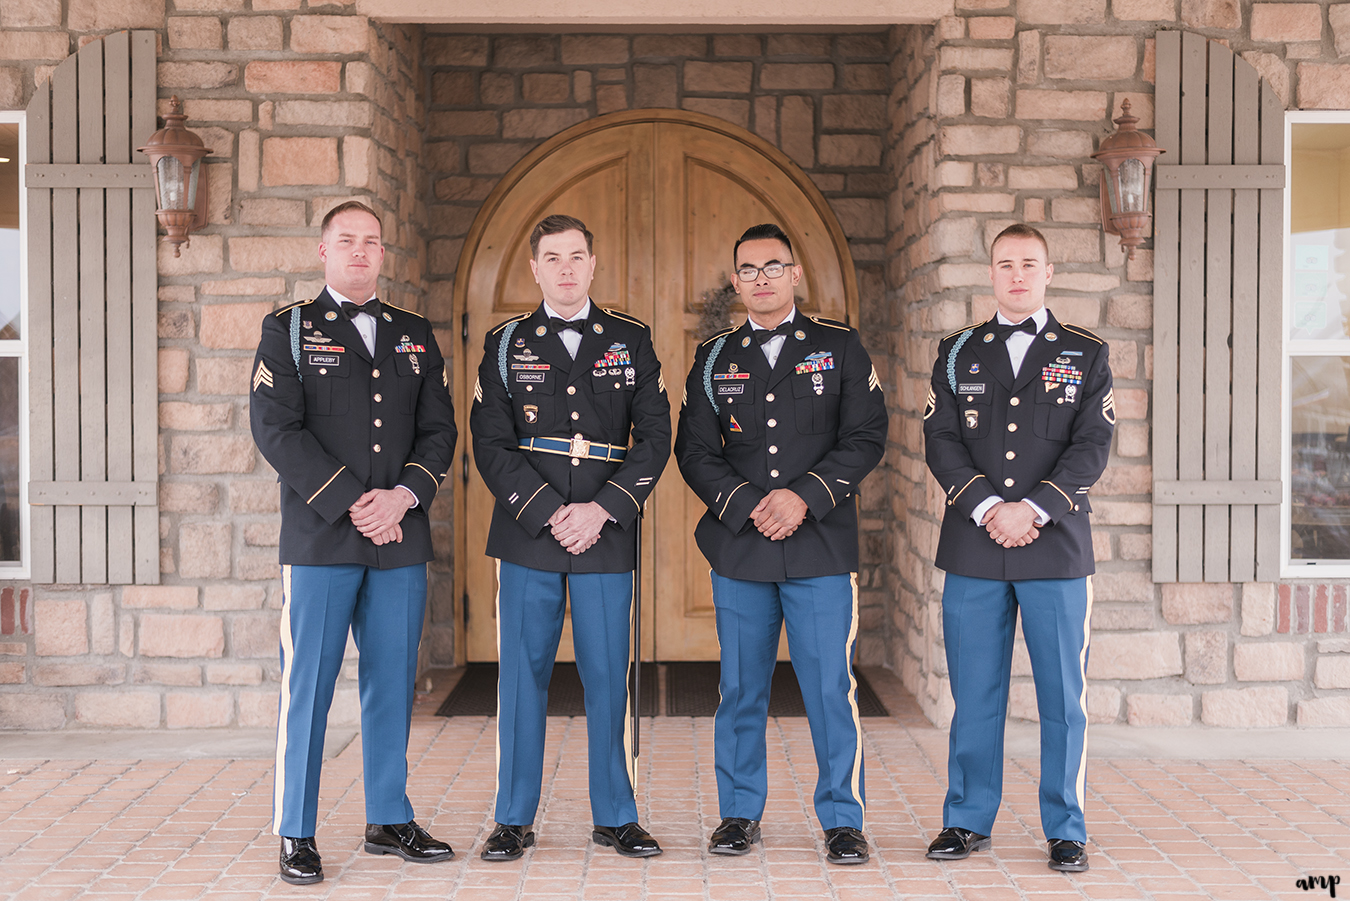 Groomsmen dressed in Army blues pose in front of the doorway of the vineyard at Two Rivers Winery